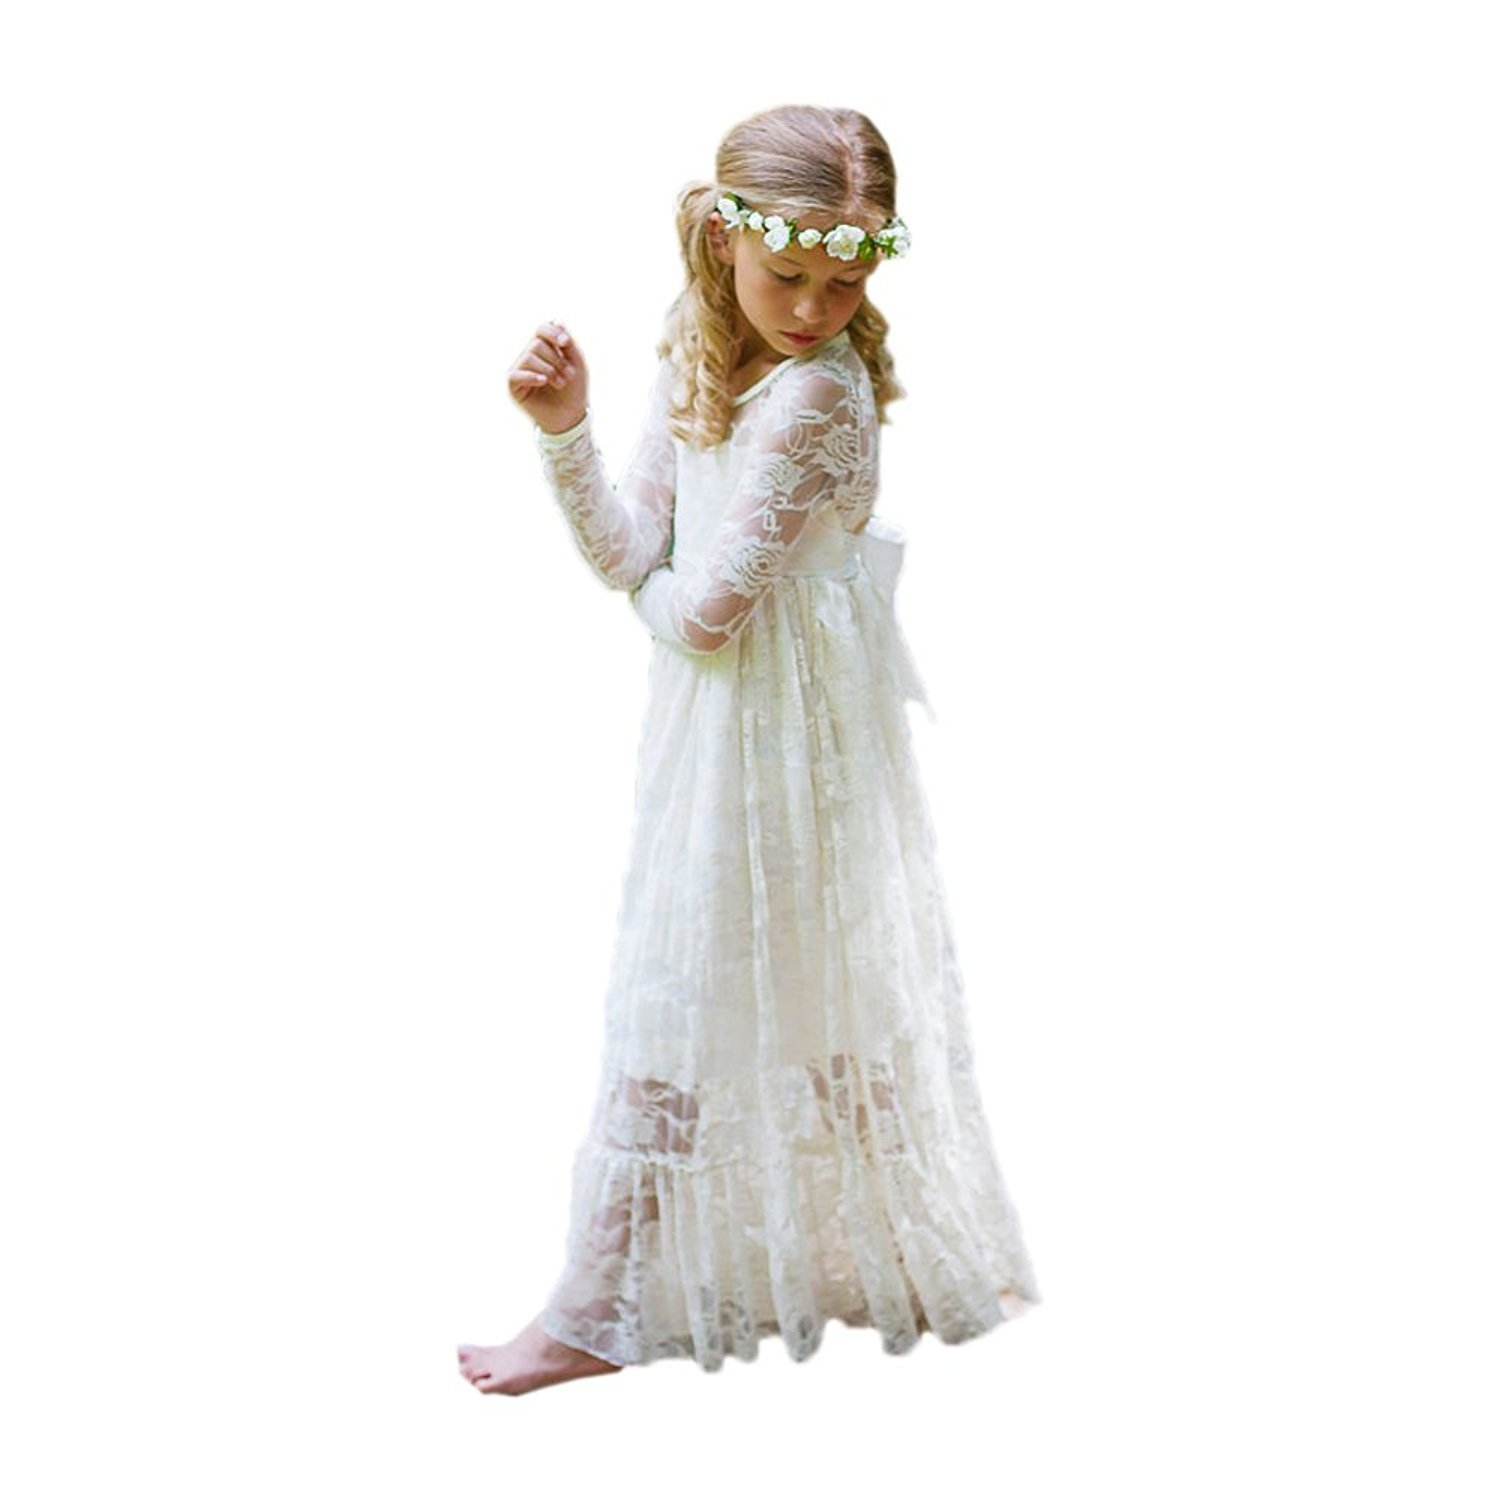 2017 New Lace Girl First Communion Dress A-Line Girl Gown Ivory Size 4